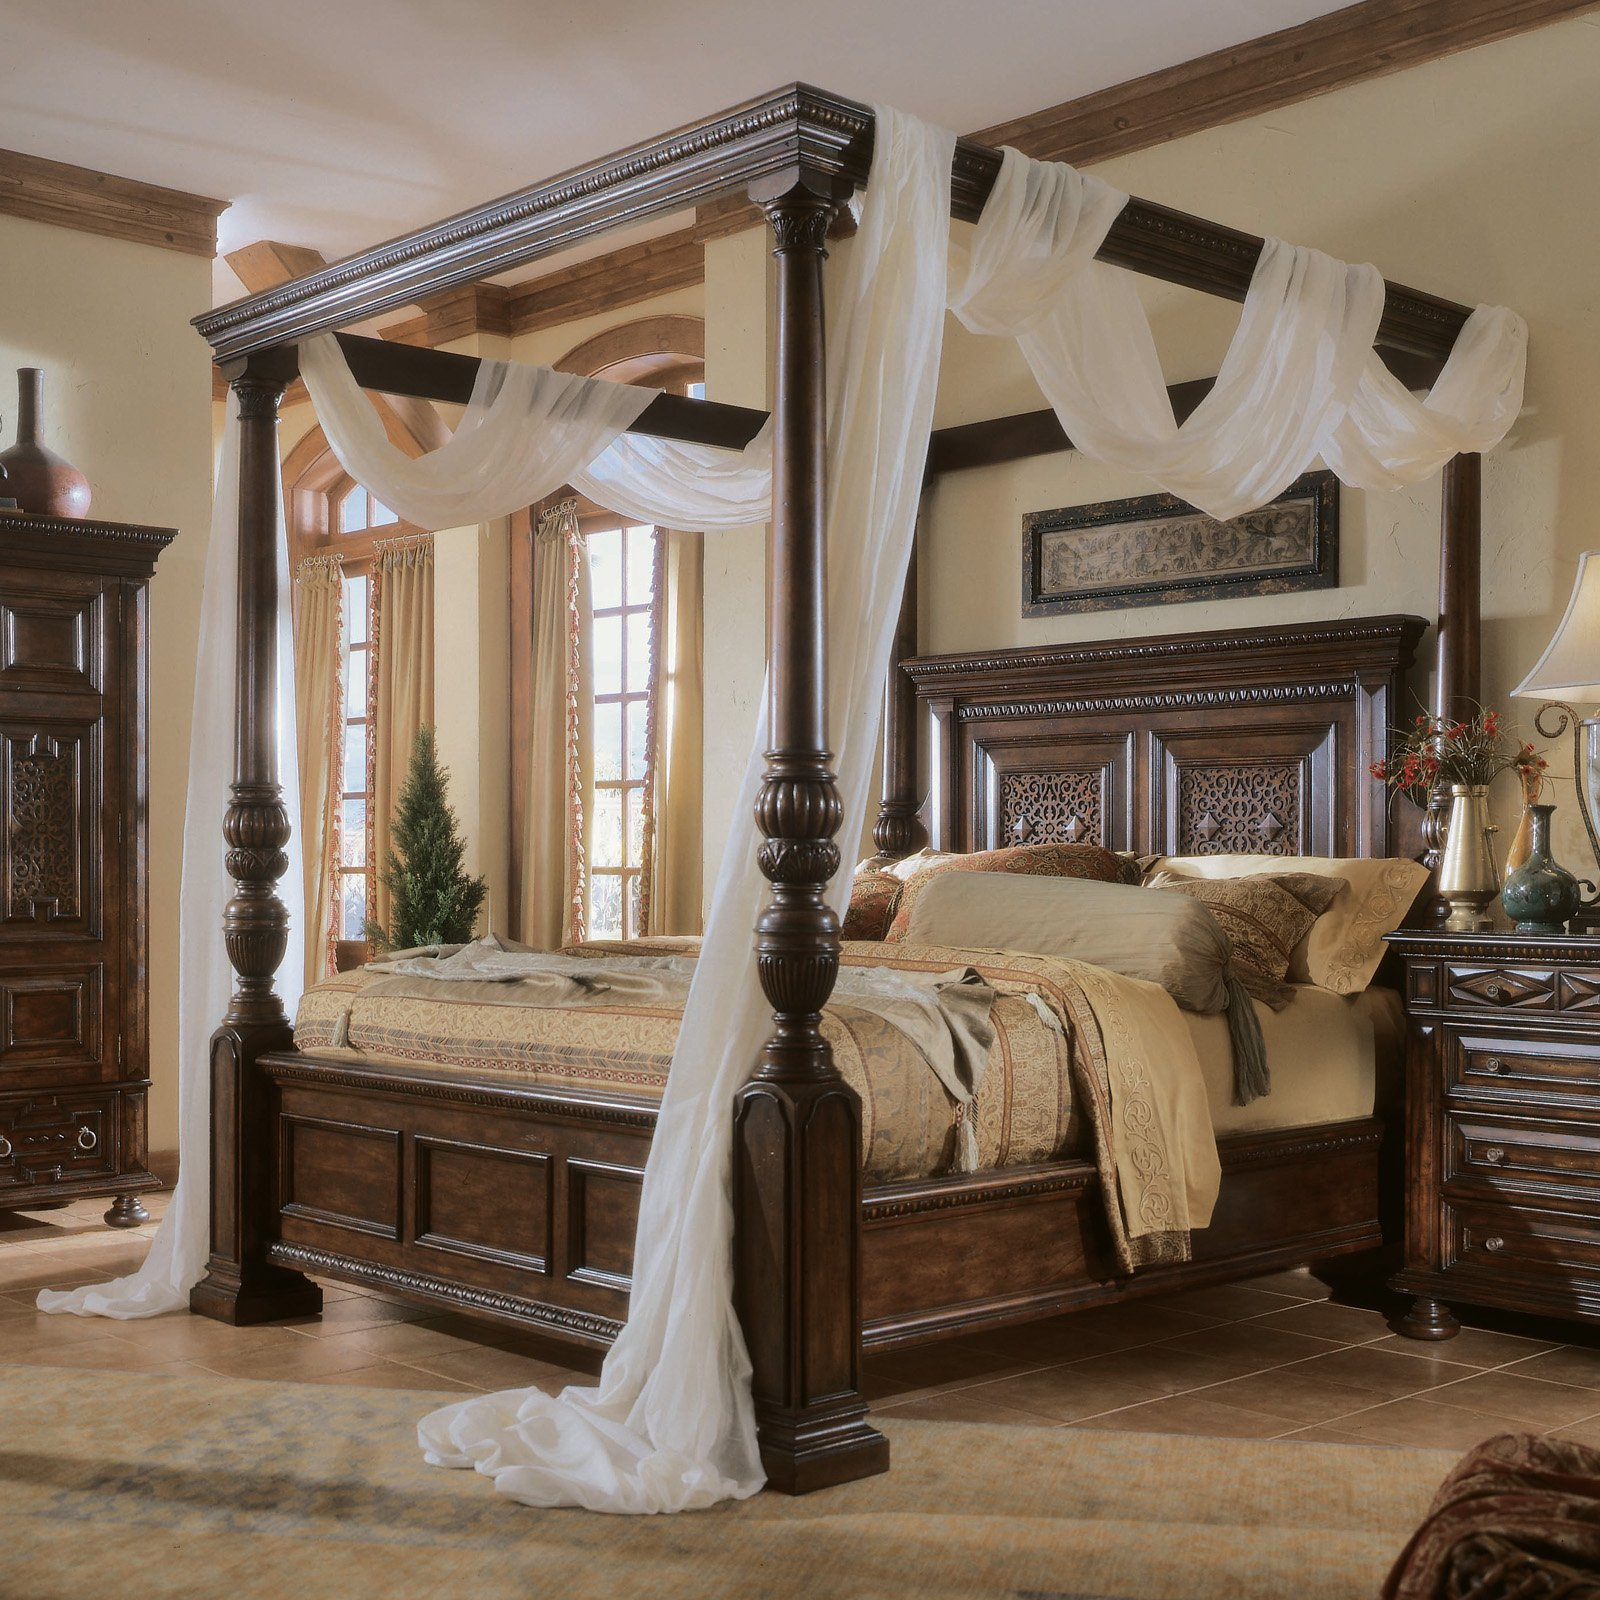 luxury rug and king size canopy bed